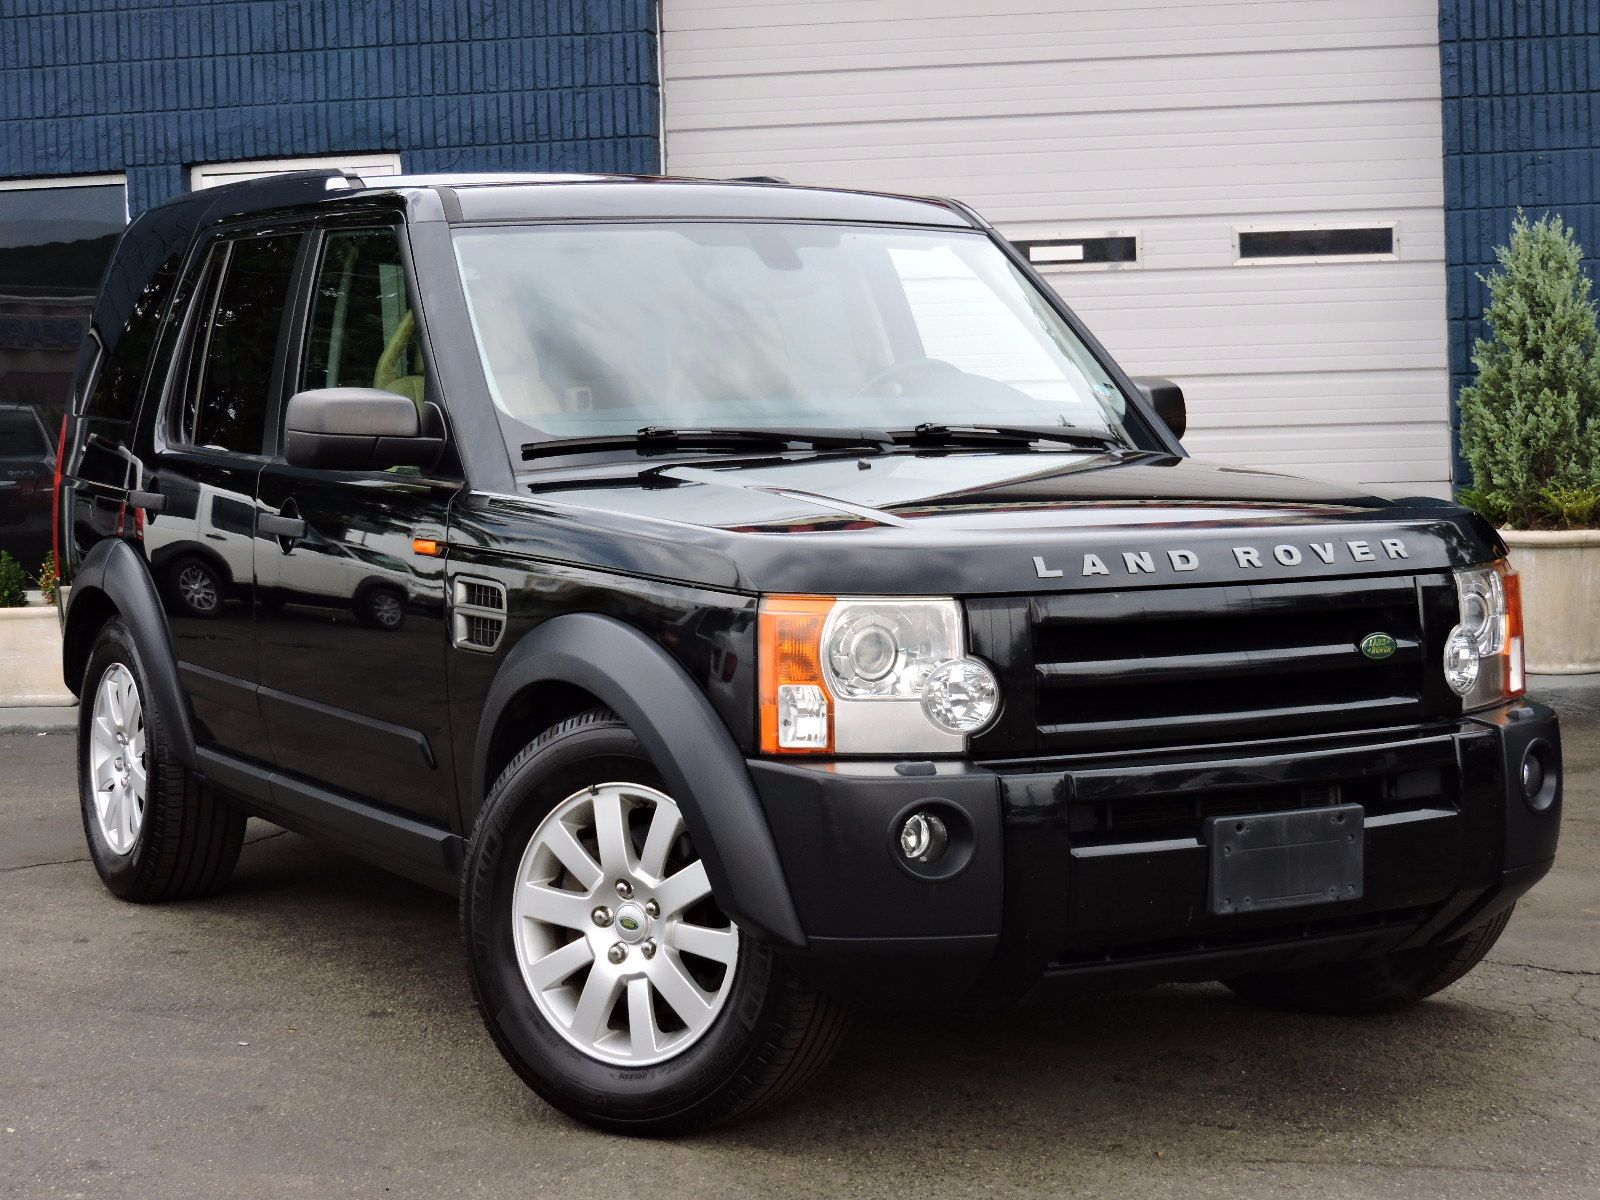 rover for sale catalog bags side bag left roof landrover only driver air land used